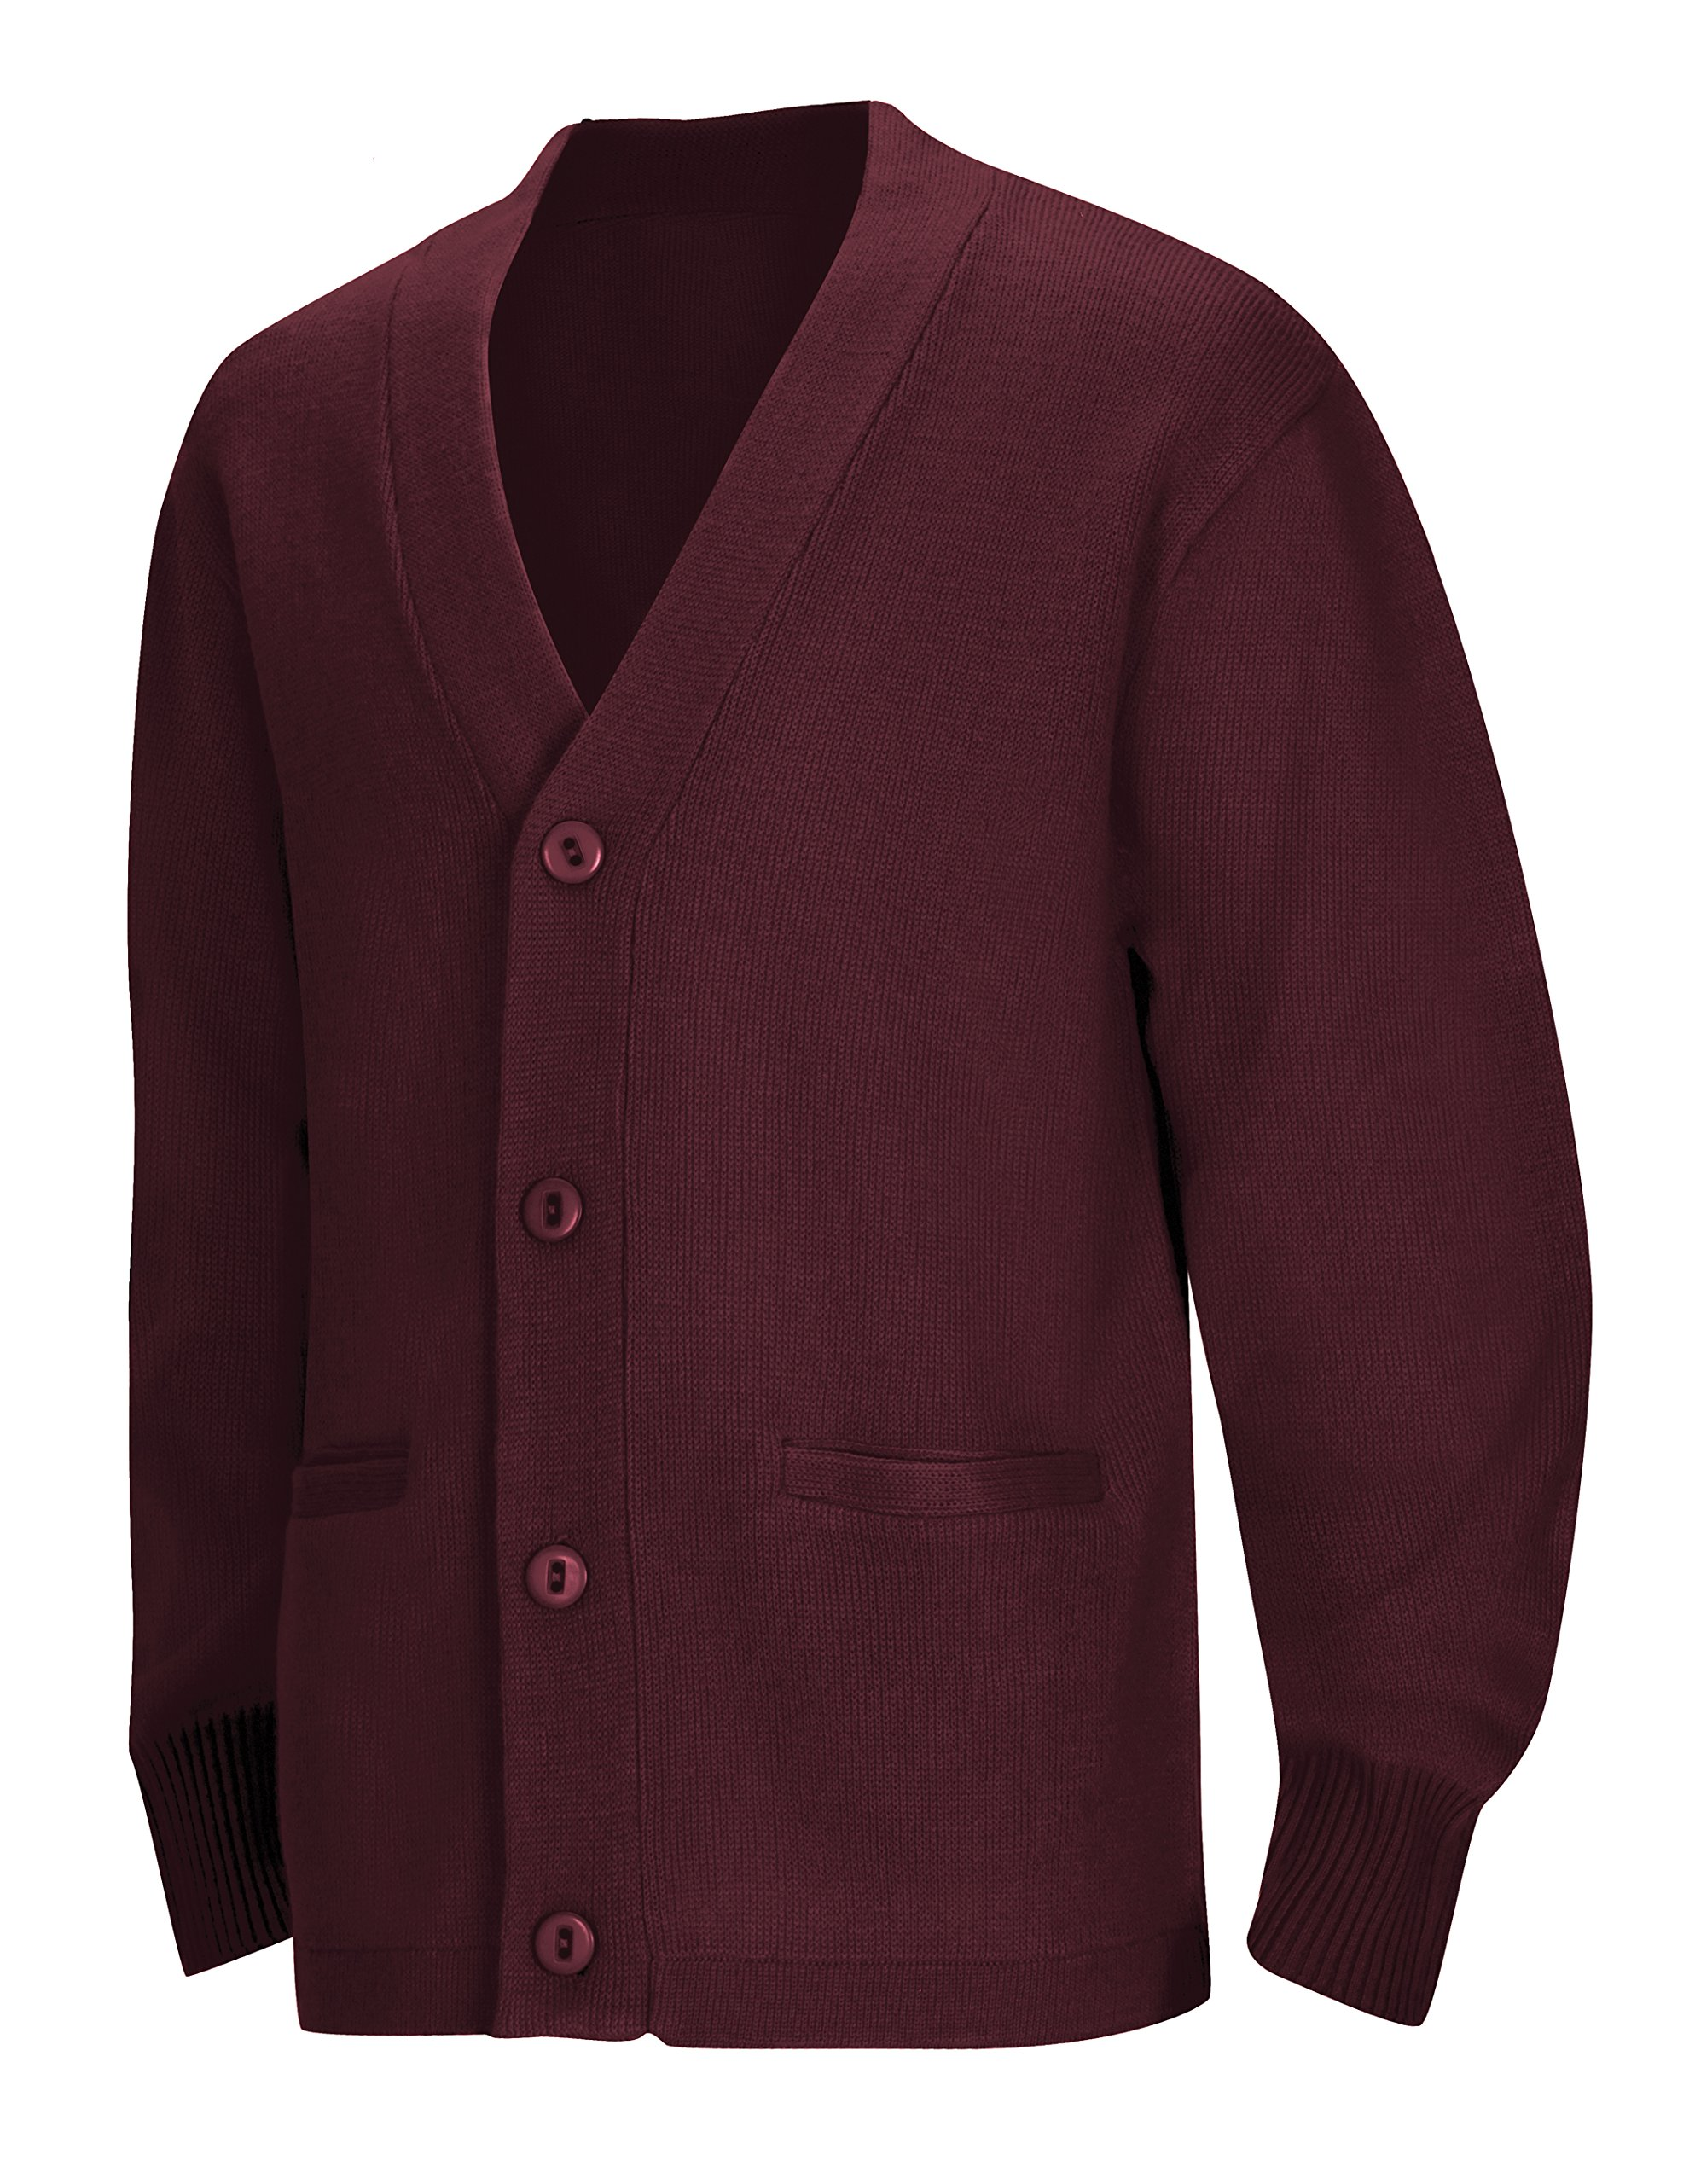 Classroom Uniforms CLASSROOM Big Boys' Uniform Cardigan Sweater, Burgundy, Large